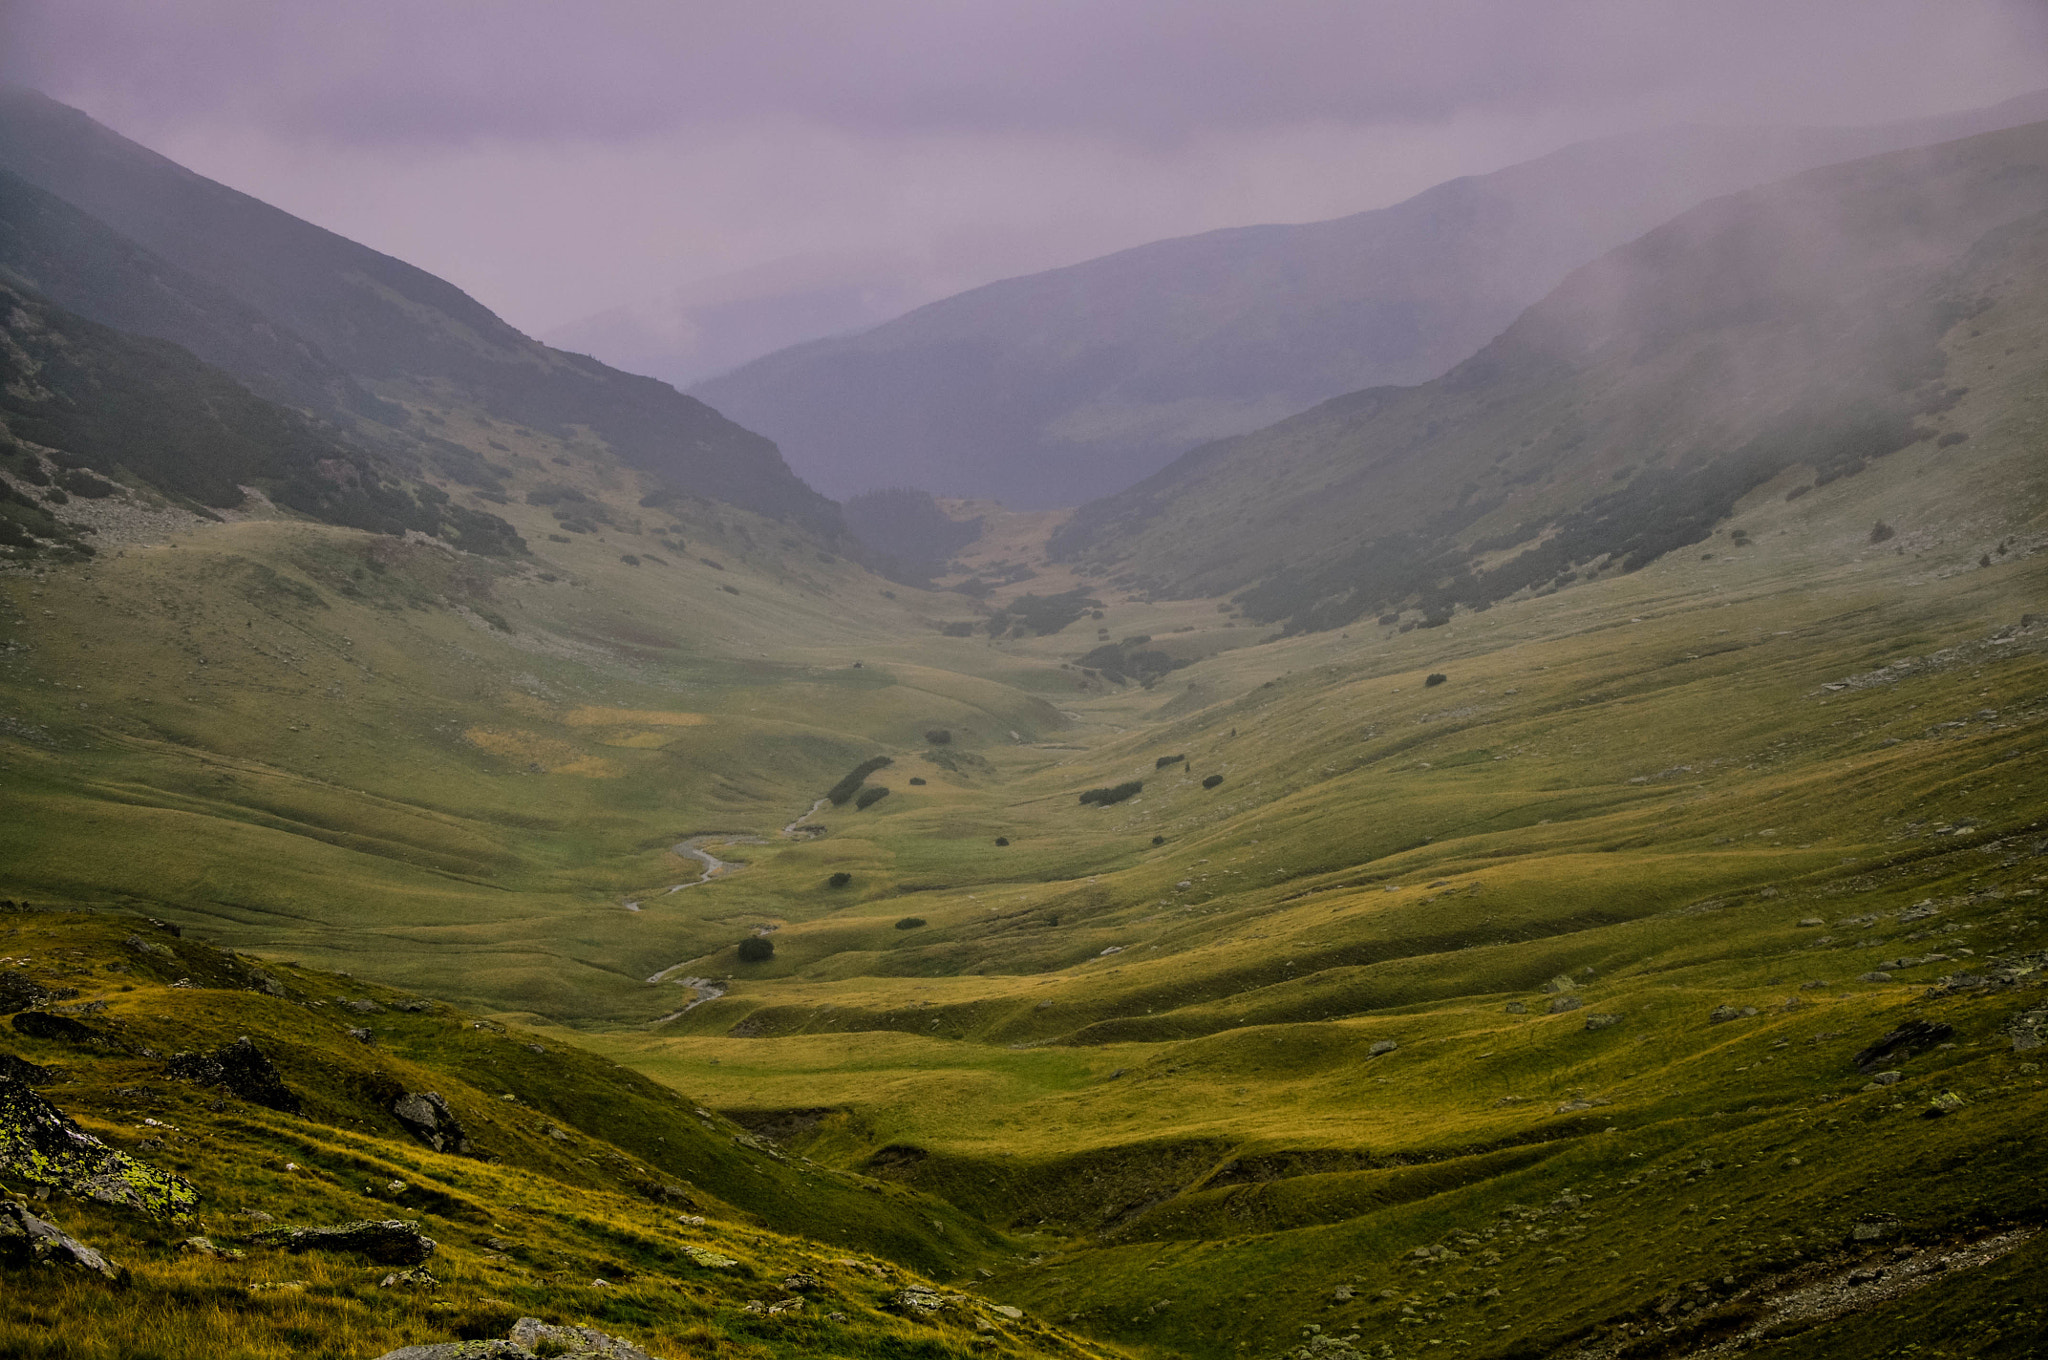 Photograph Transalpina by Andi Cretu on 500px